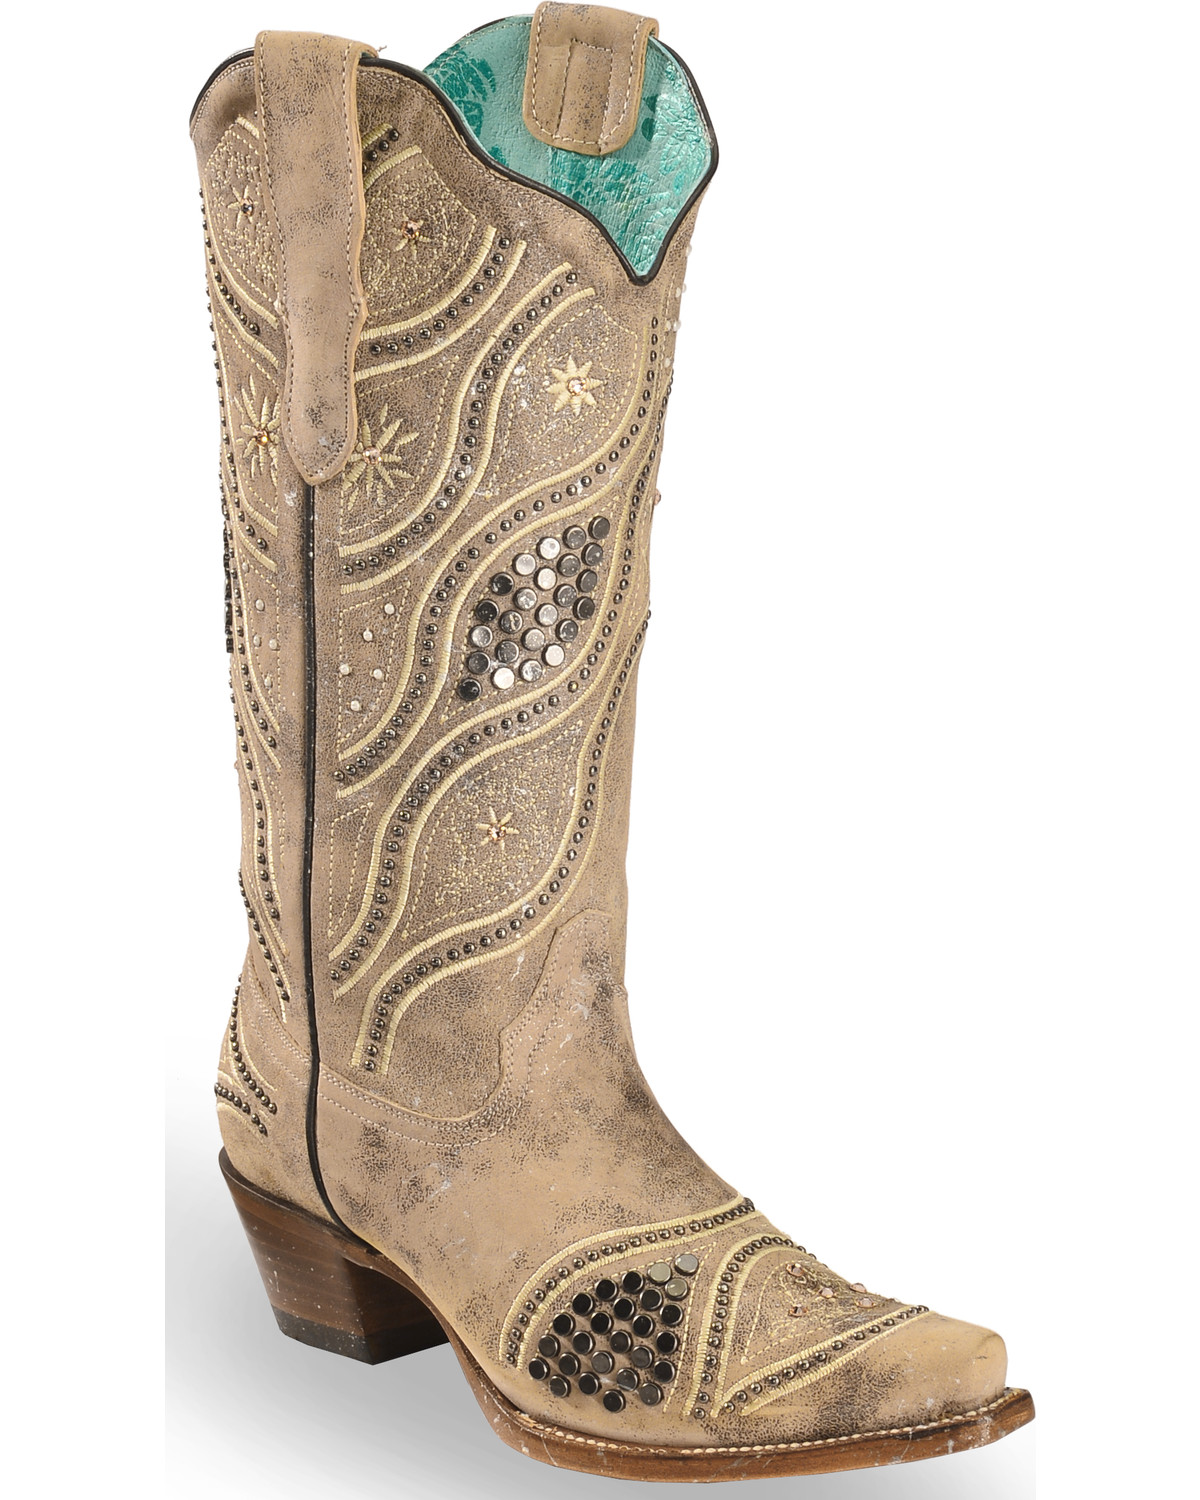 Wedding Cowgirl Boots: Corral Women's Embroidered Studded Bridal Cowgirl Boots